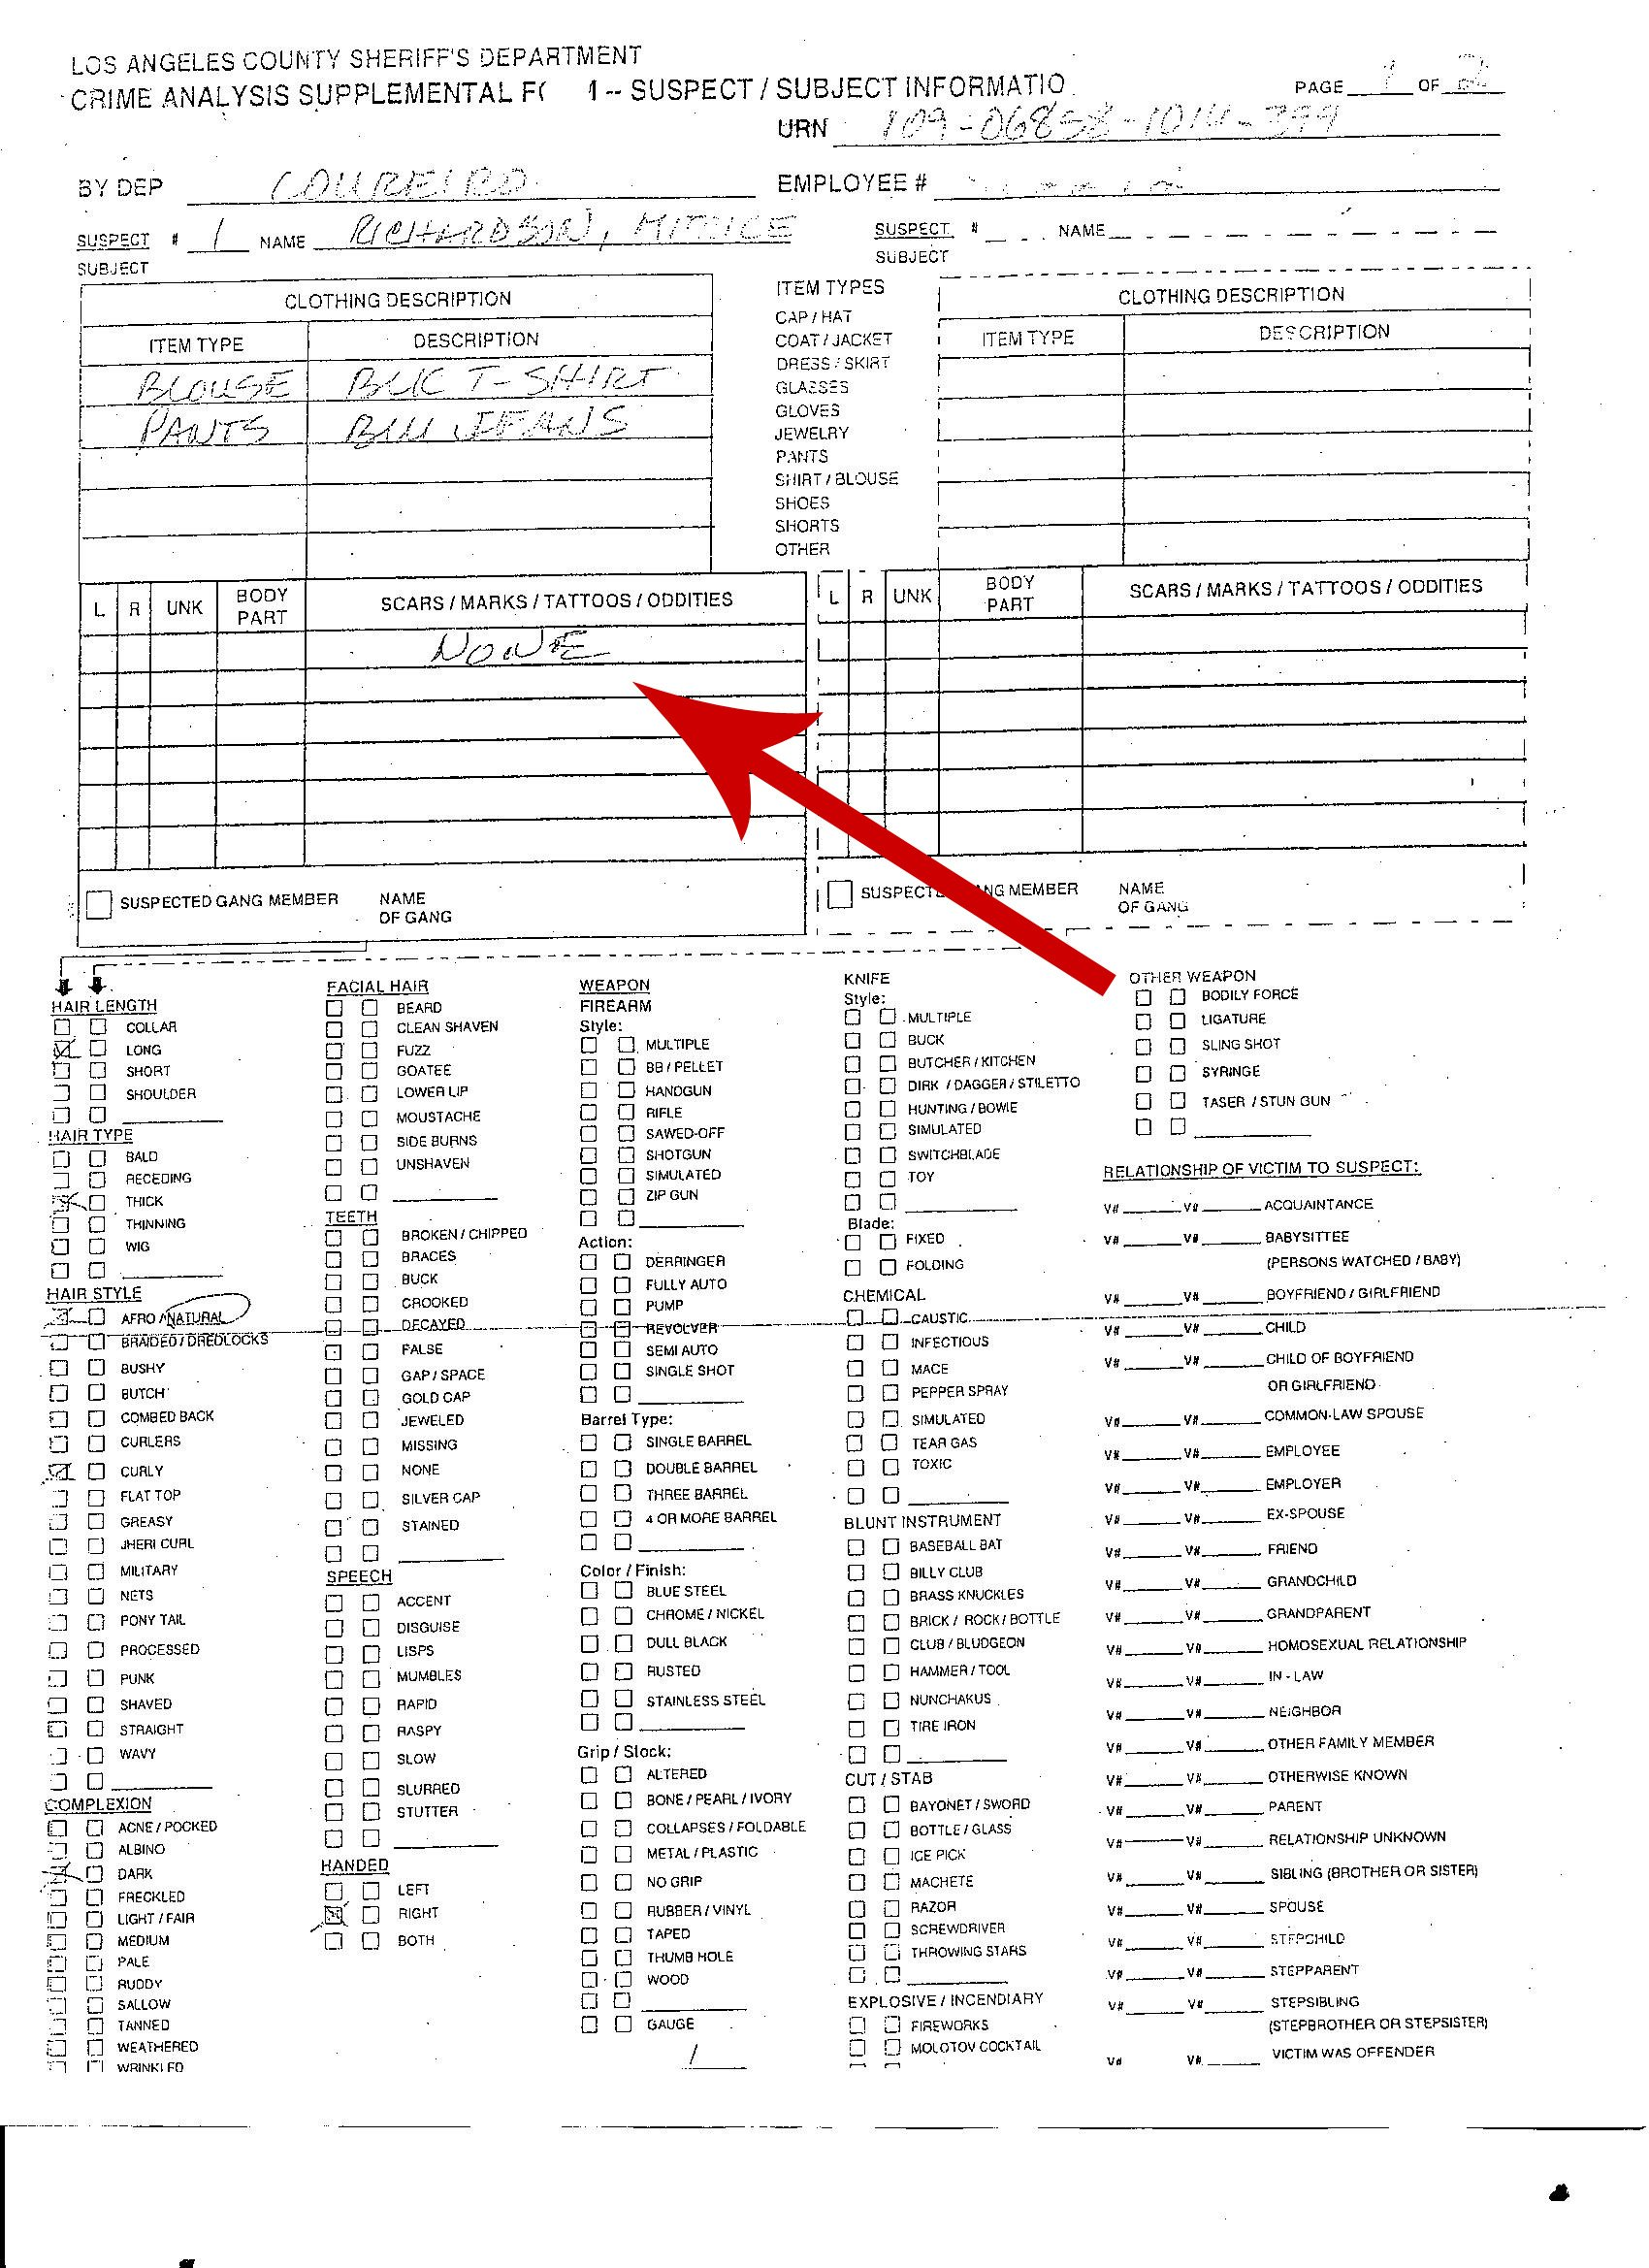 Examples of Police Reports http://www.bringmitricehome.org/The-Facts.html